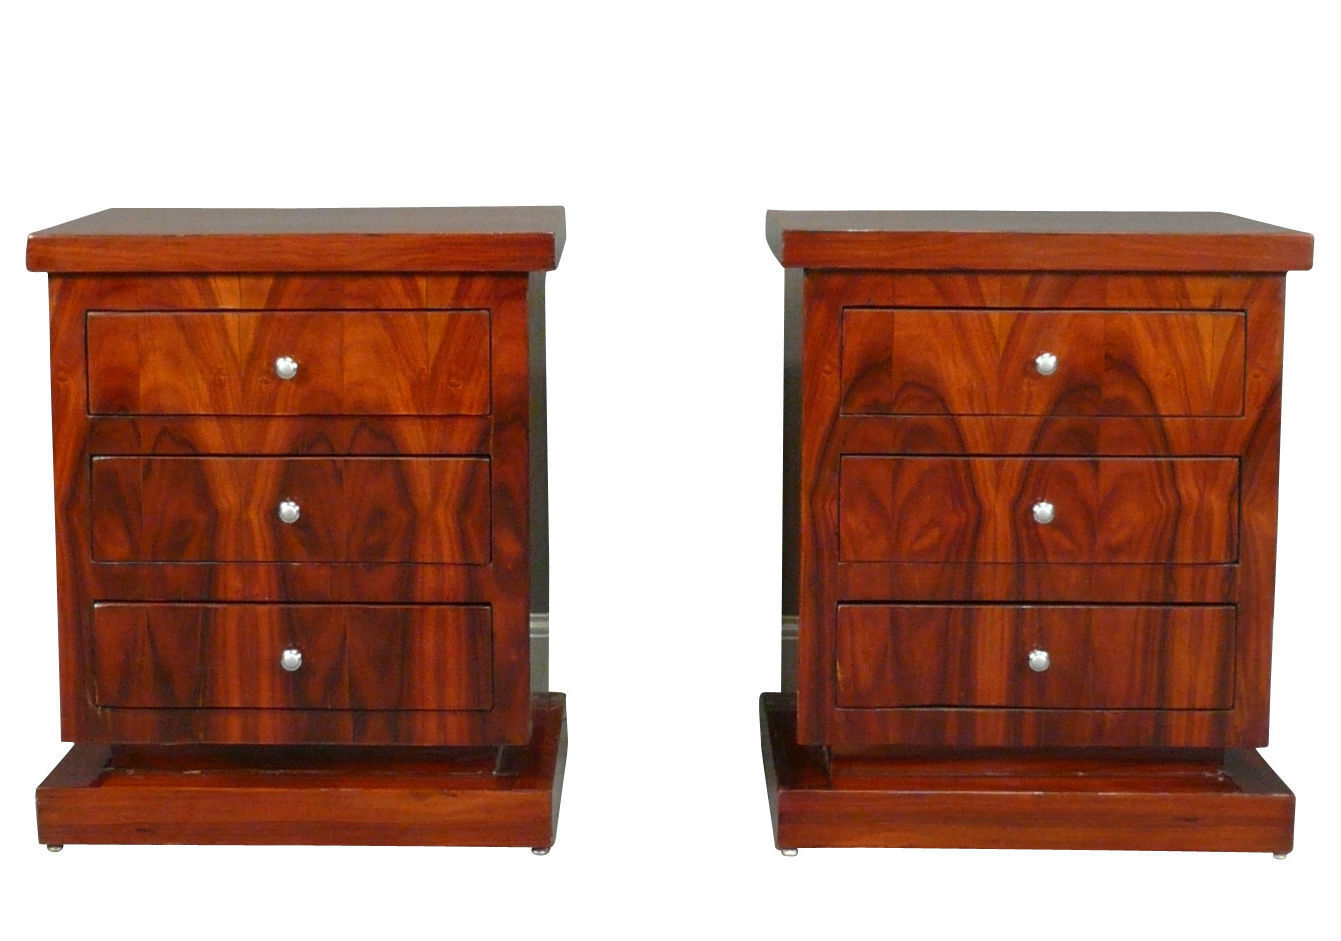 petite commode art d co en palissandre la paire. Black Bedroom Furniture Sets. Home Design Ideas